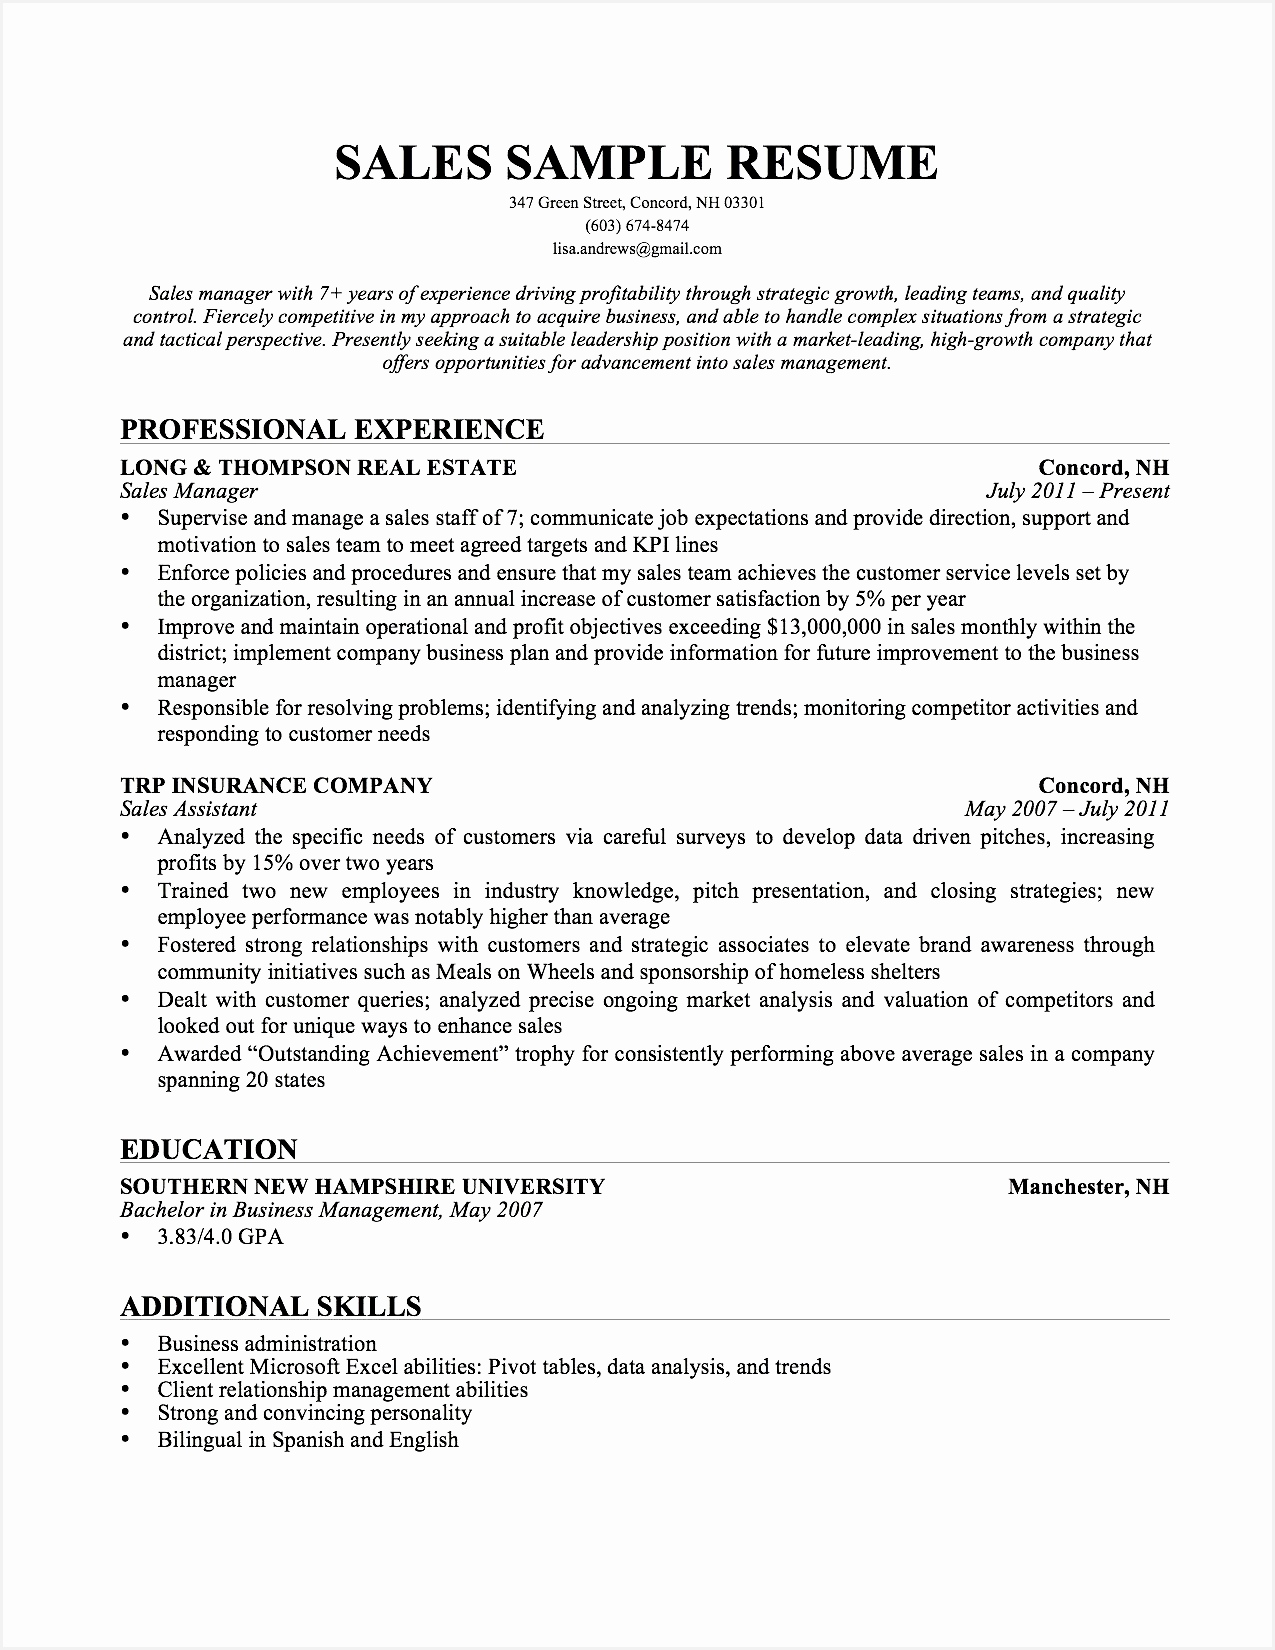 Awesome Free Professional Resume Samples Lovely Resume Simple 0d16501275